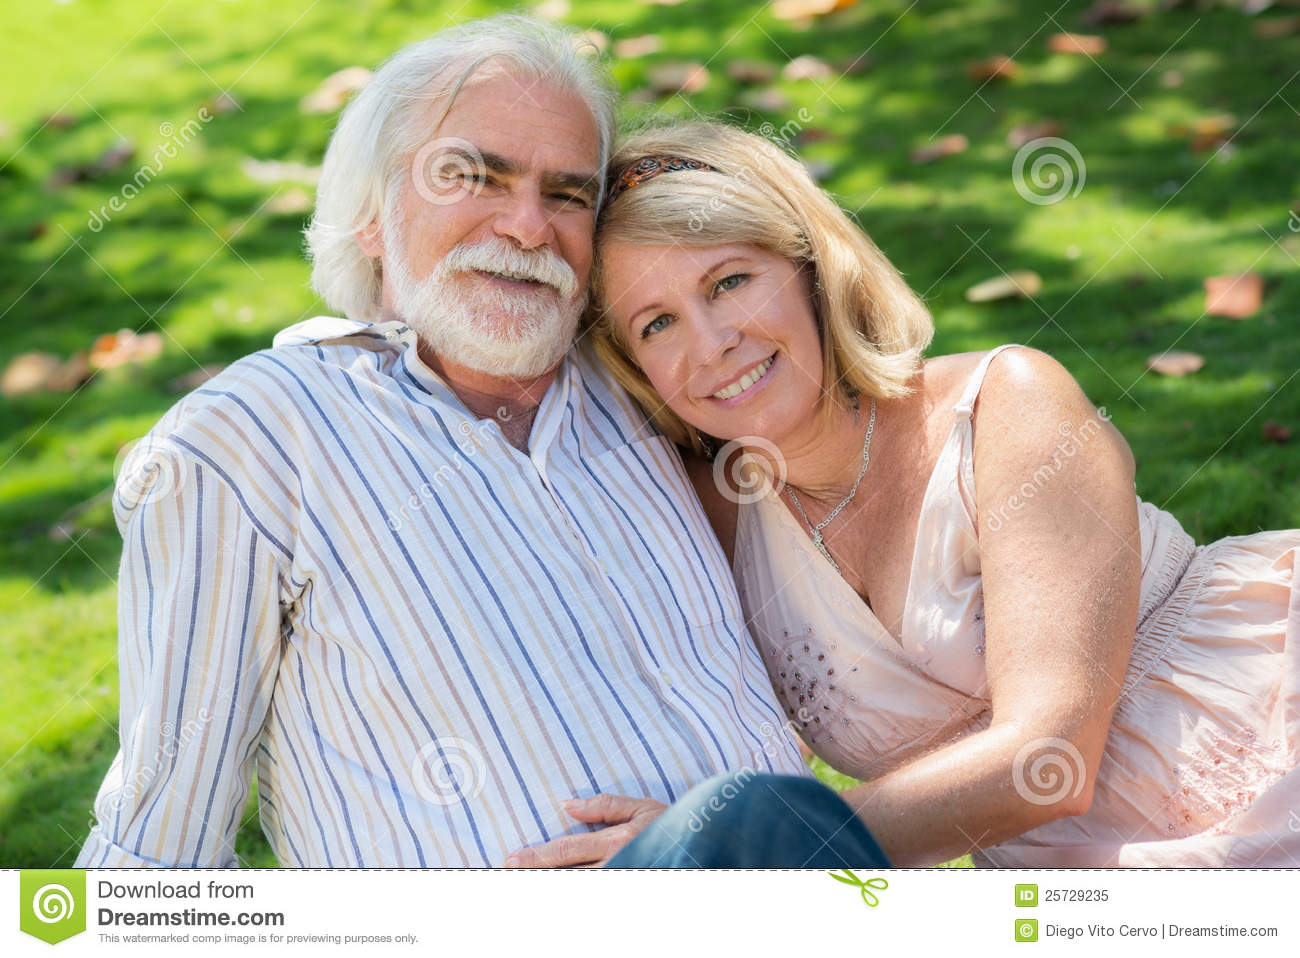 Old woman and man